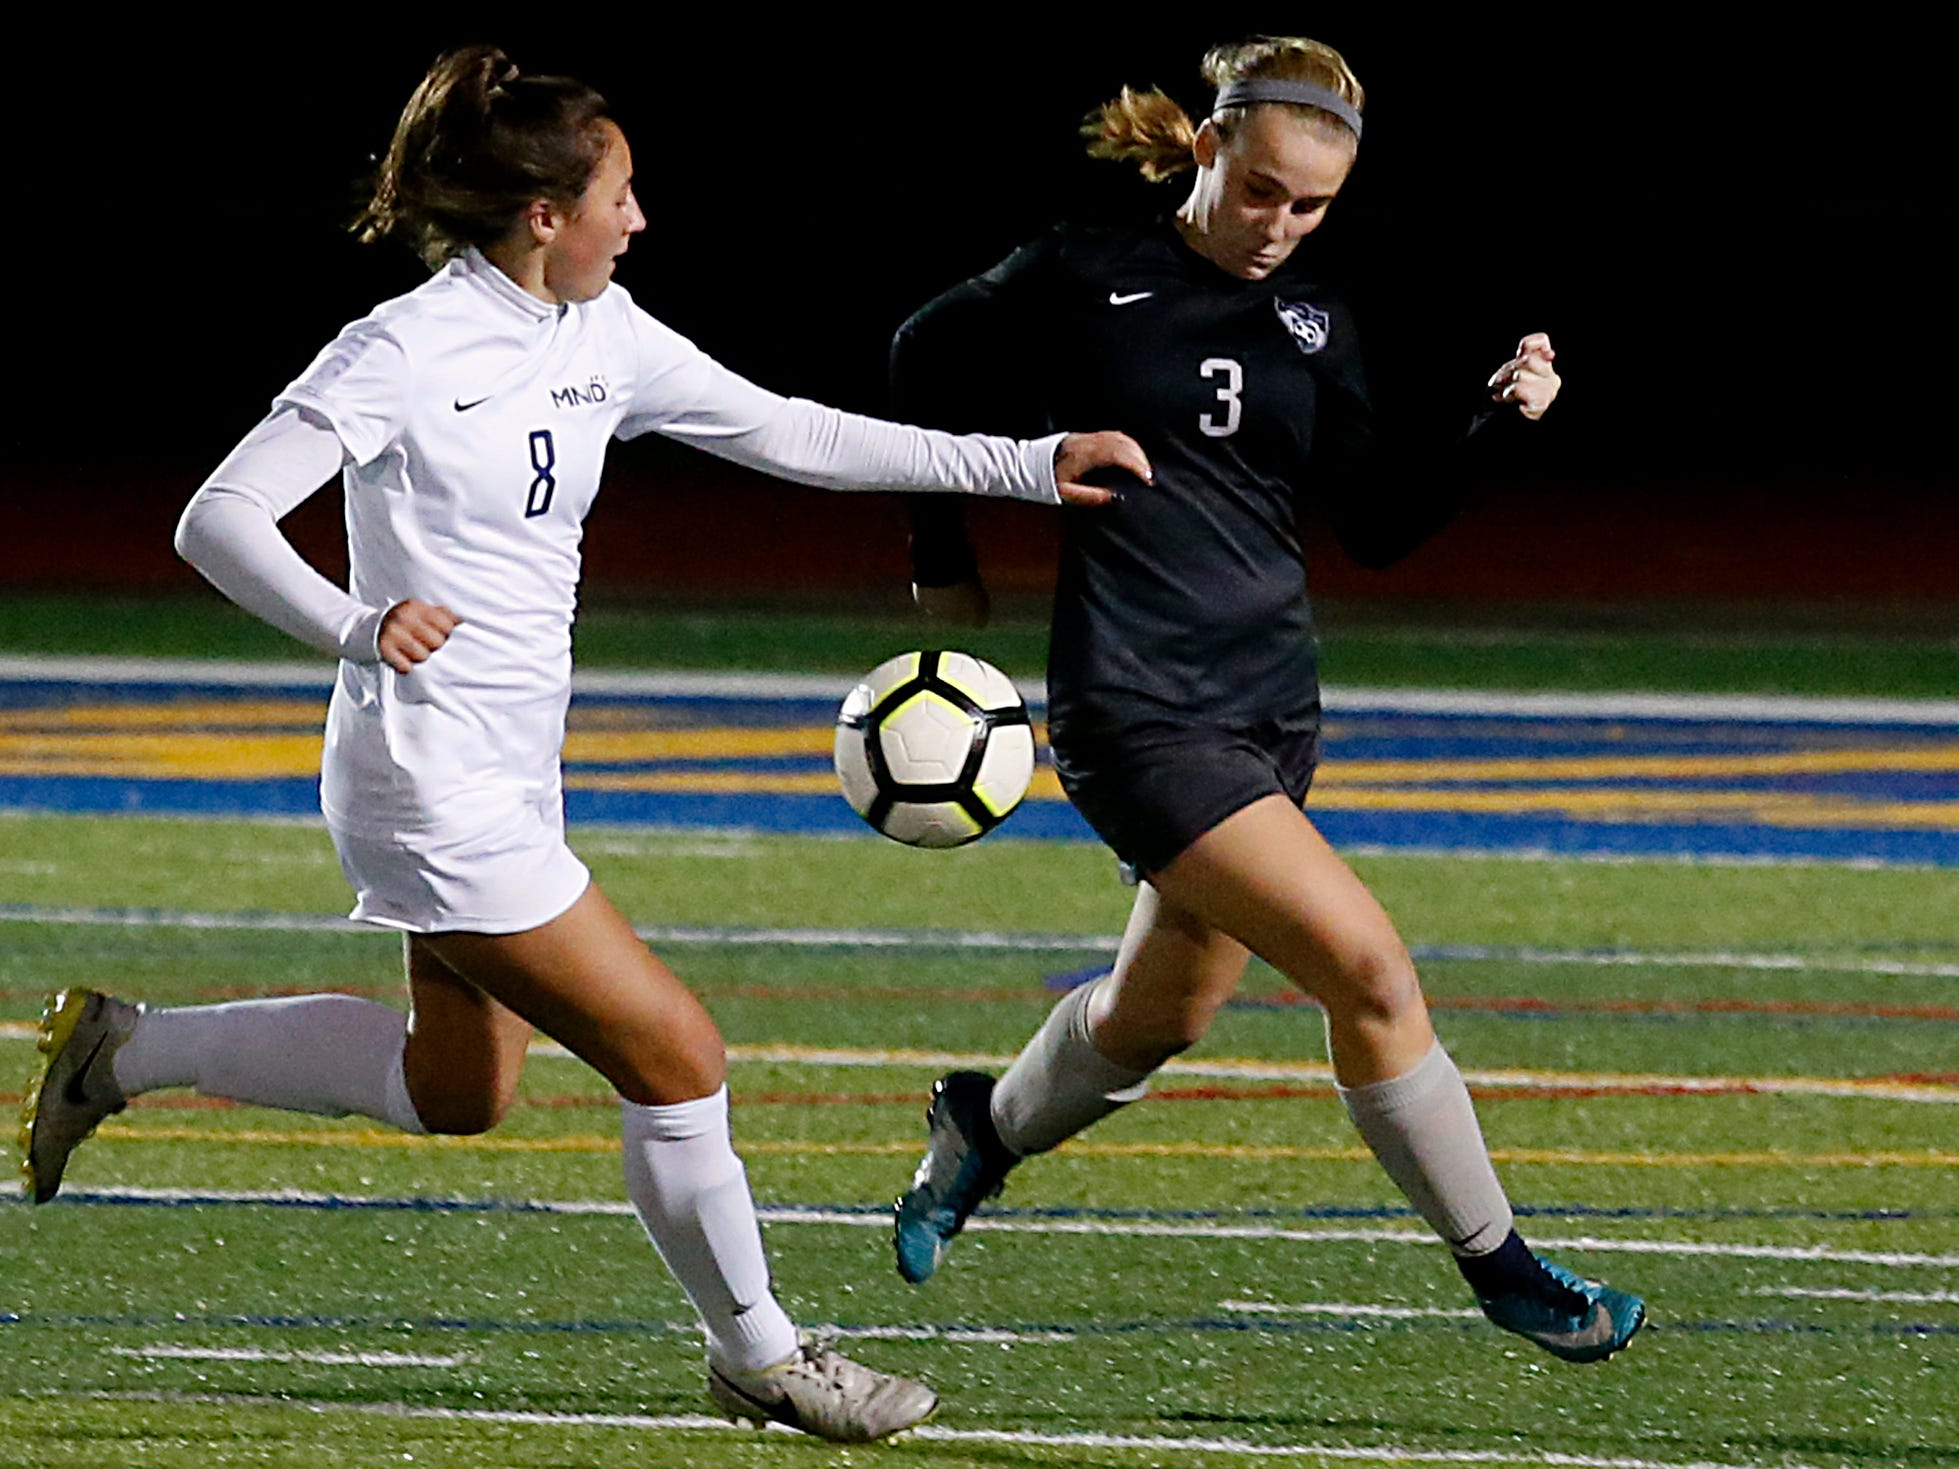 Mount Notre Dame midfielder moves the ball as Lakota East defender Mackenzie Bierman pursues during their Division I Southwest district final soccer game at Walnut Hills in Cincinnati Saturday, Oct. 27, 2018.